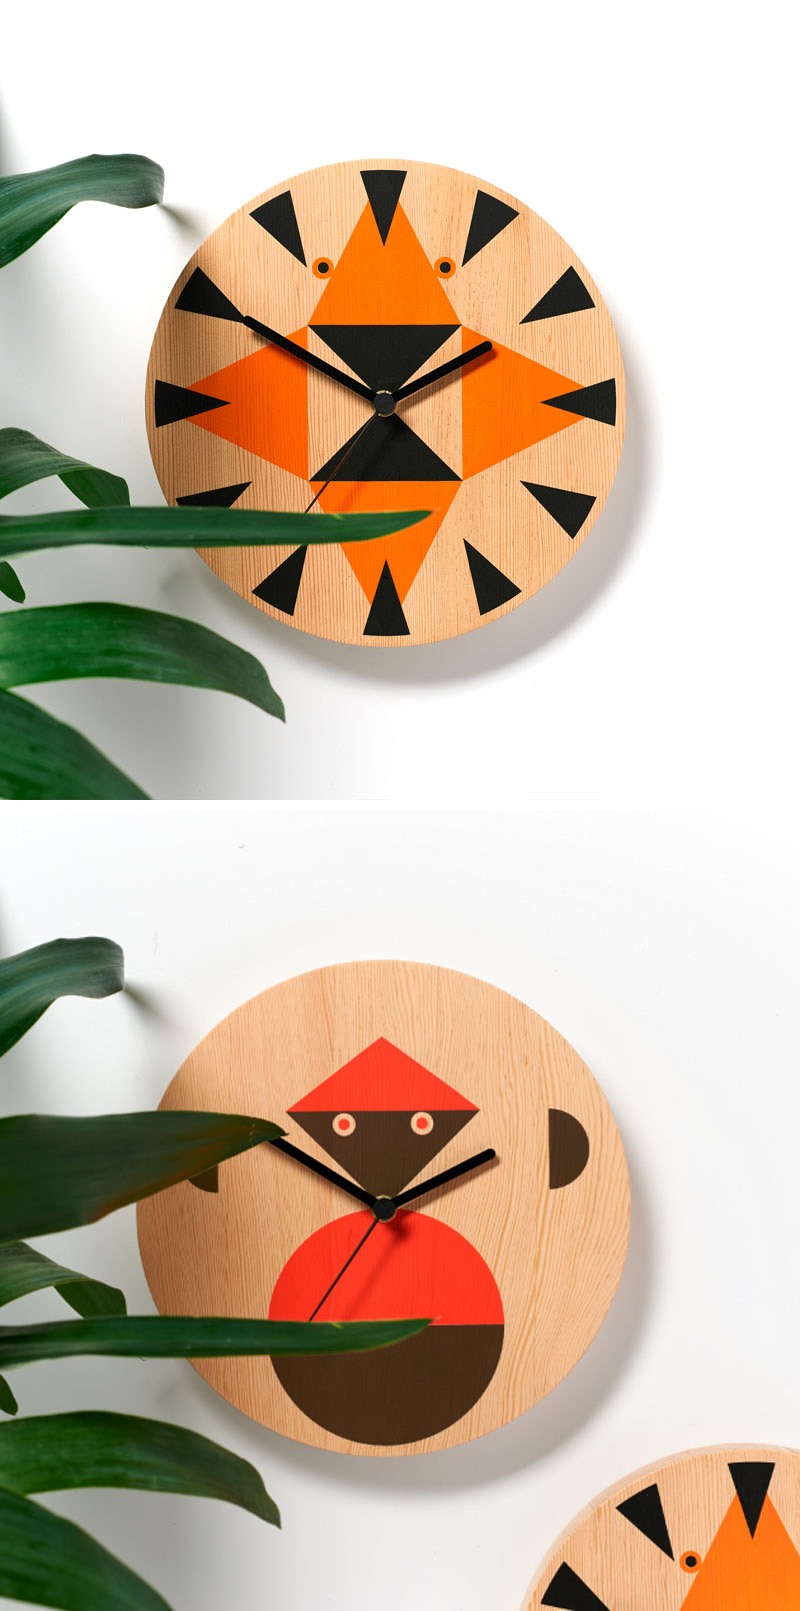 Animal faces made from simple geometric shapes create a whimsical look on these modern wood wall clocks. #ModernWoodClock #WallClock #ModernDecor #ModernClock